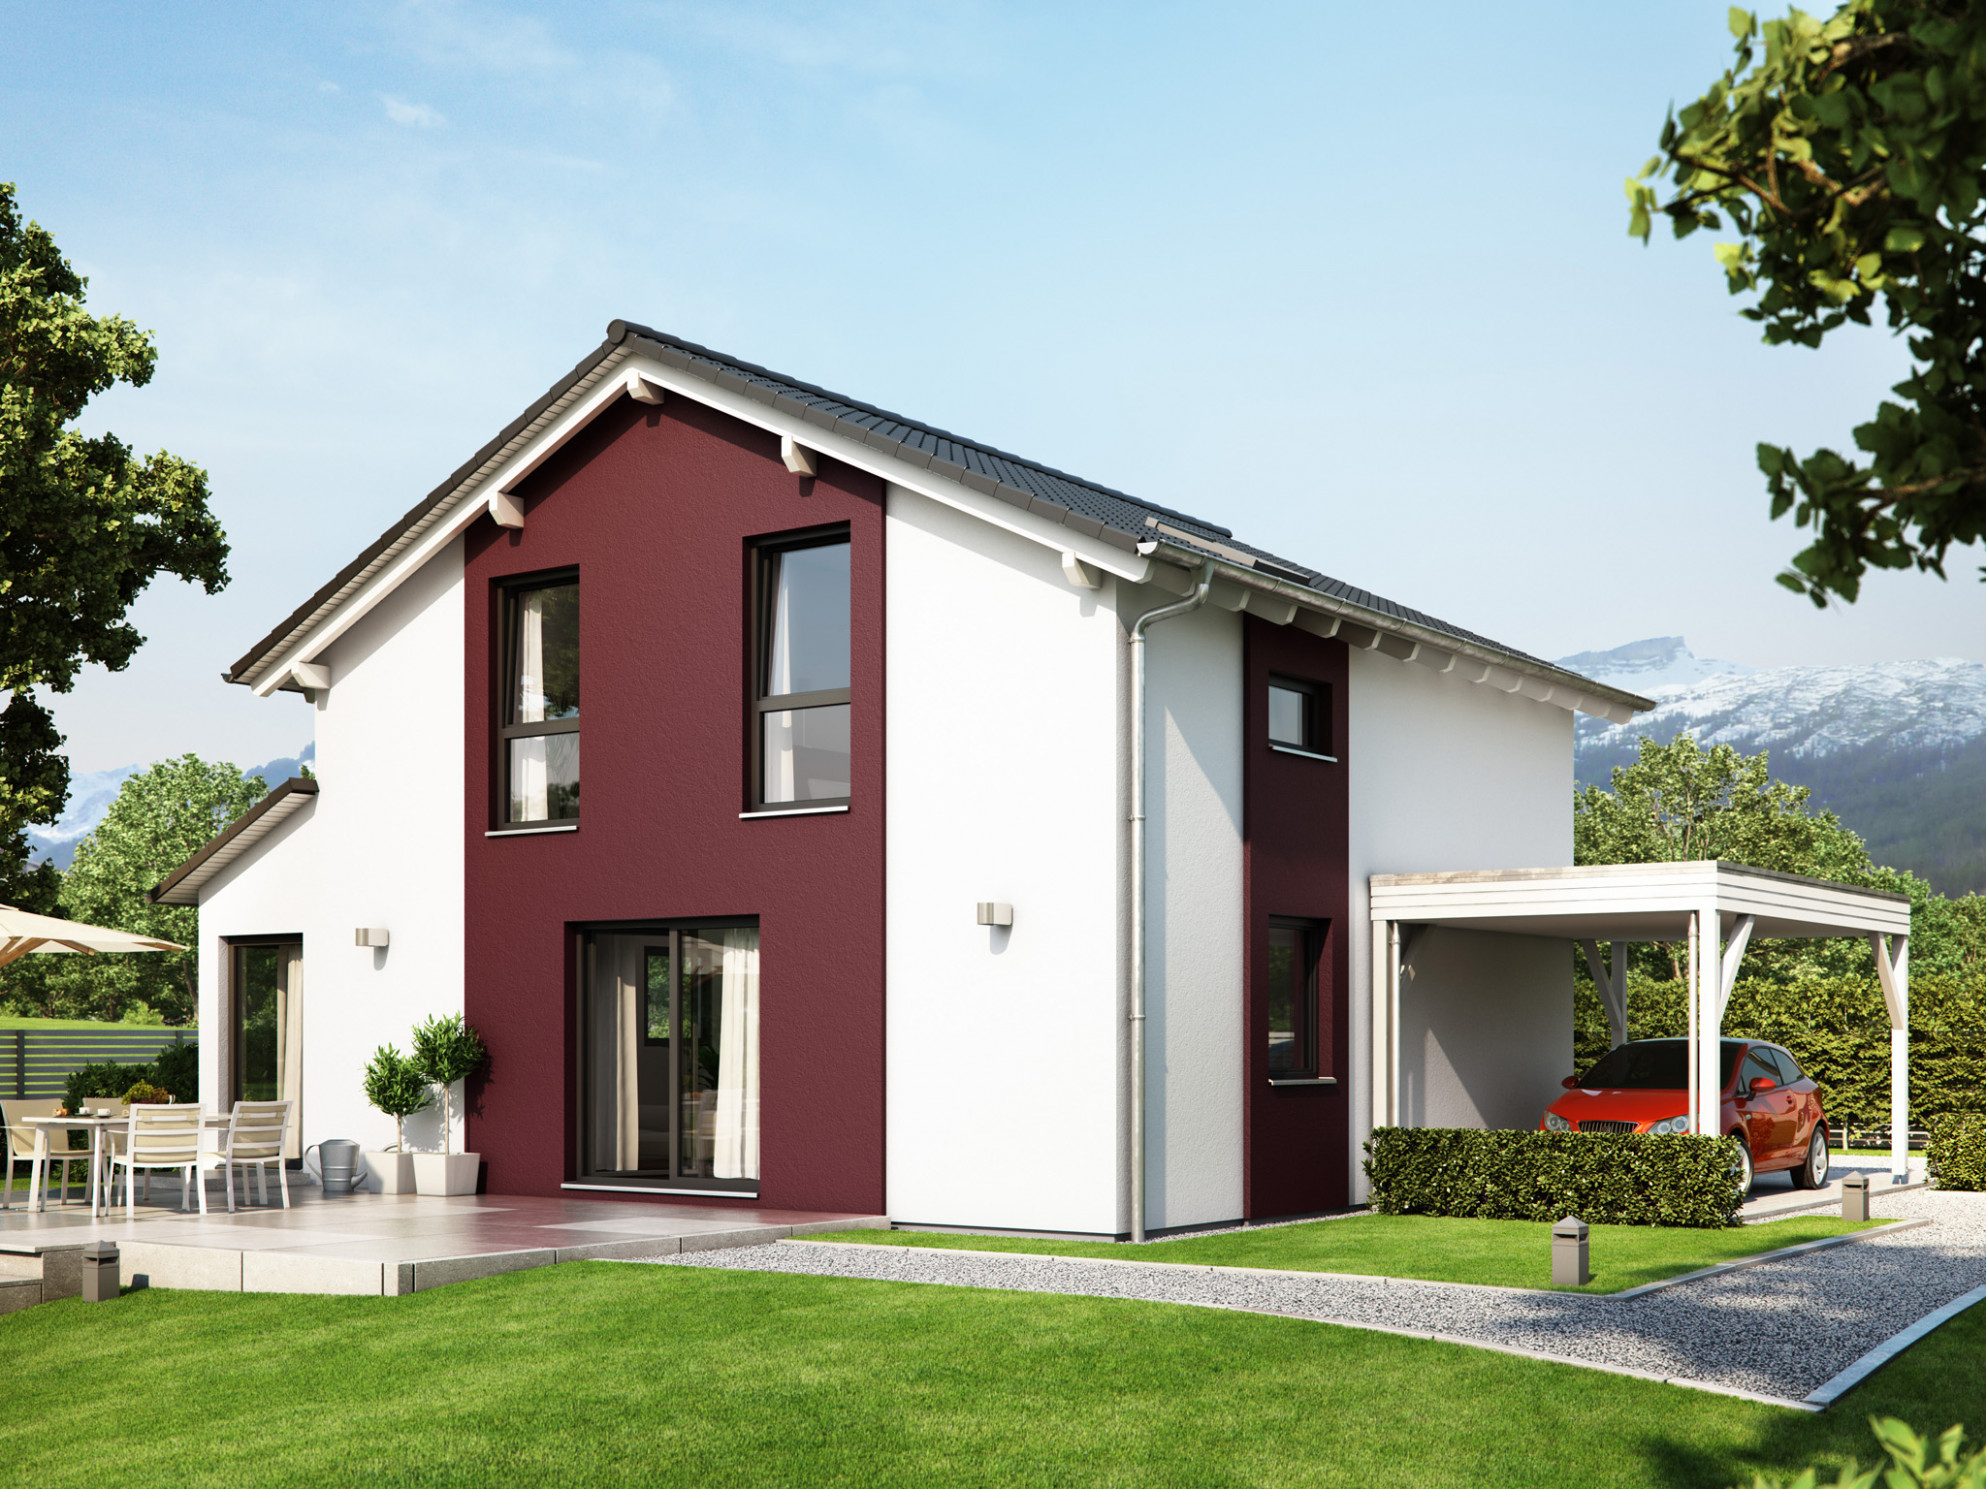 Saddleback SUNSHINE 10 V10 Living Haus | Direct Construction Carports With Pitched Roofs